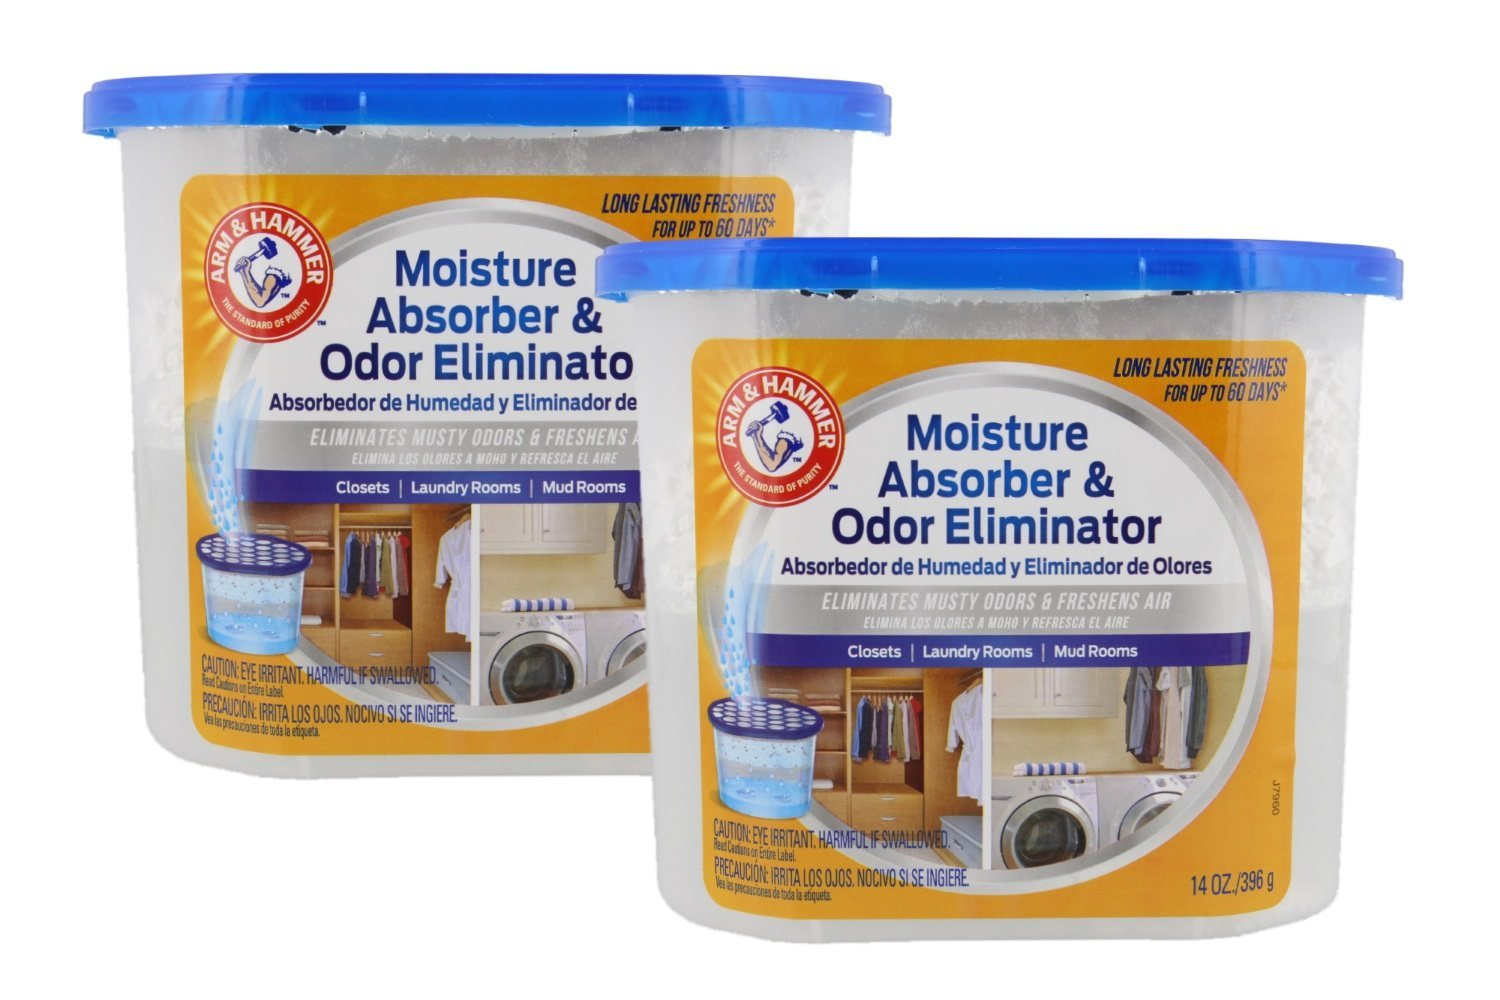 Arm & Hammer Moisture Absorber & Odor Eliminator 14oz Tub, 2 Pack - Eliminates Musty Odors & Freshens Air for Closets, Laundry rooms, Mud Rooms